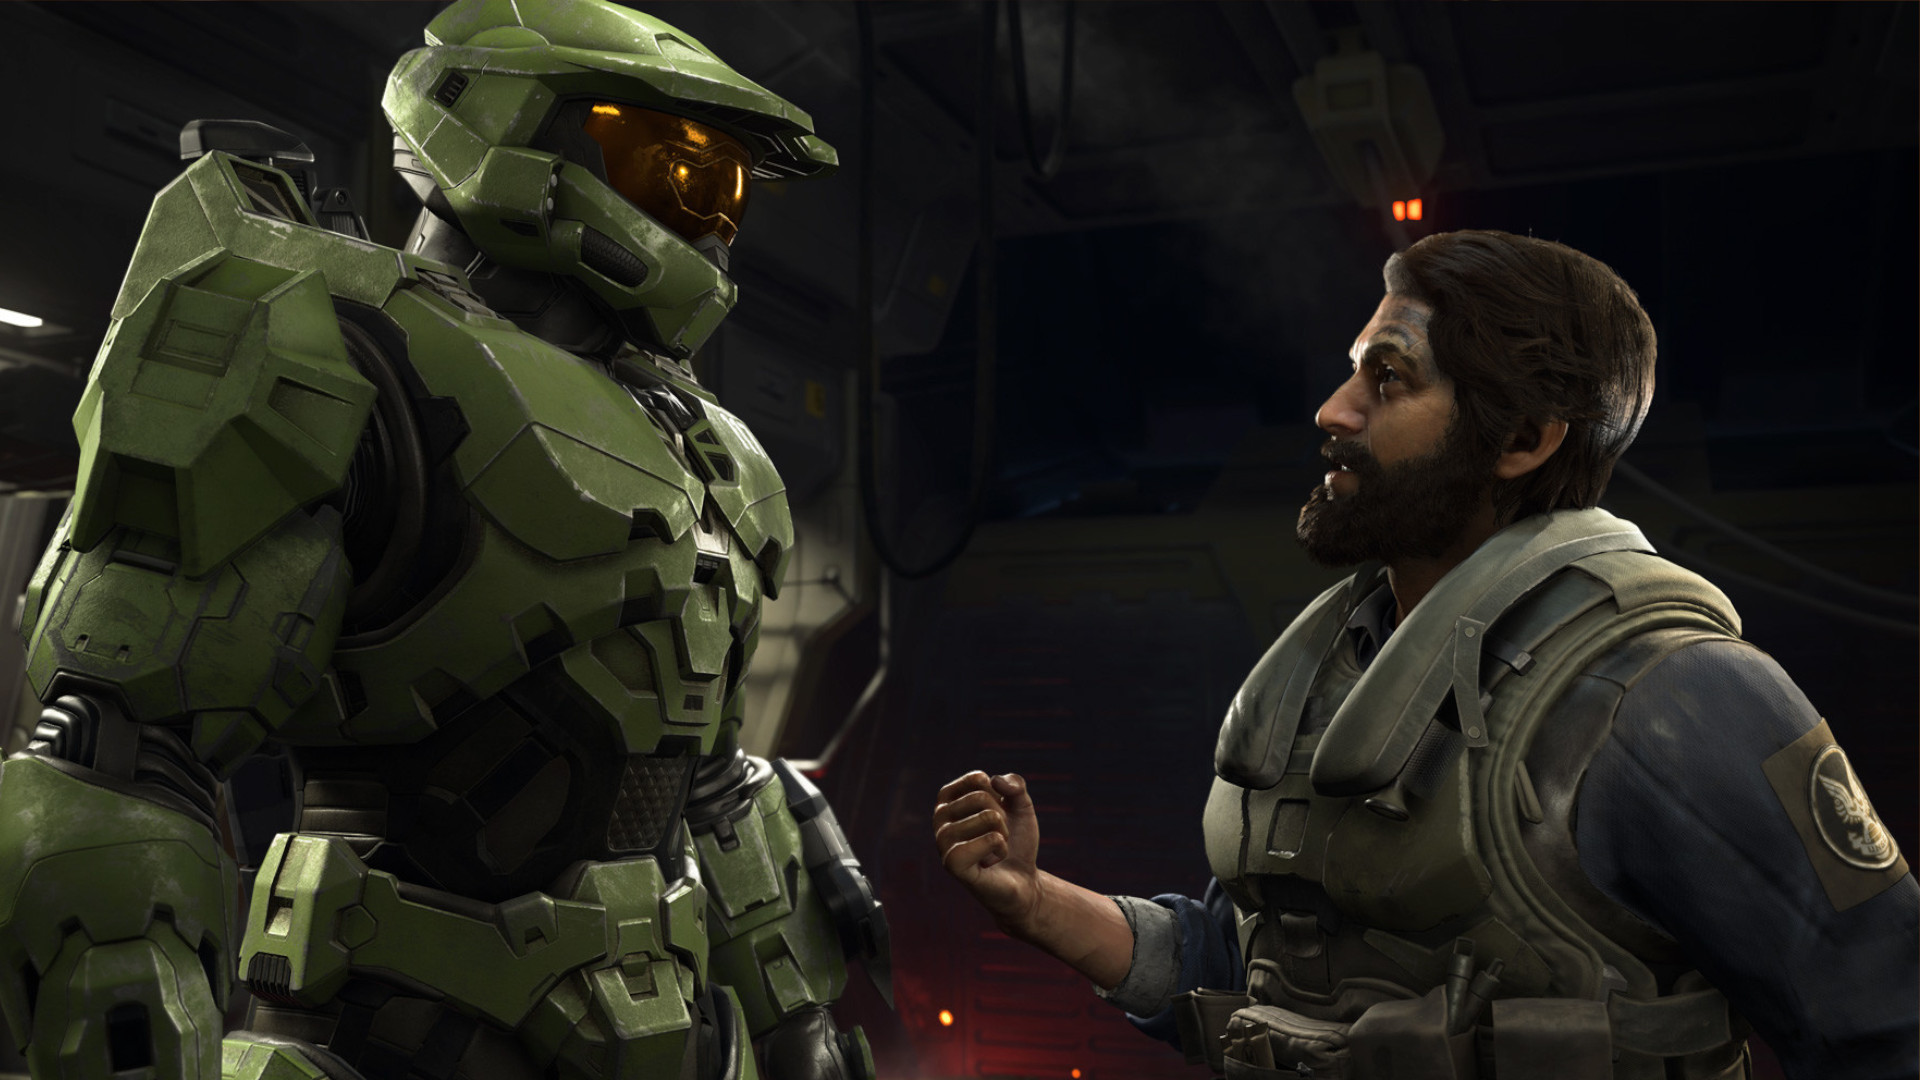 We're getting monthly updates on Halo Infinite leading up to launch